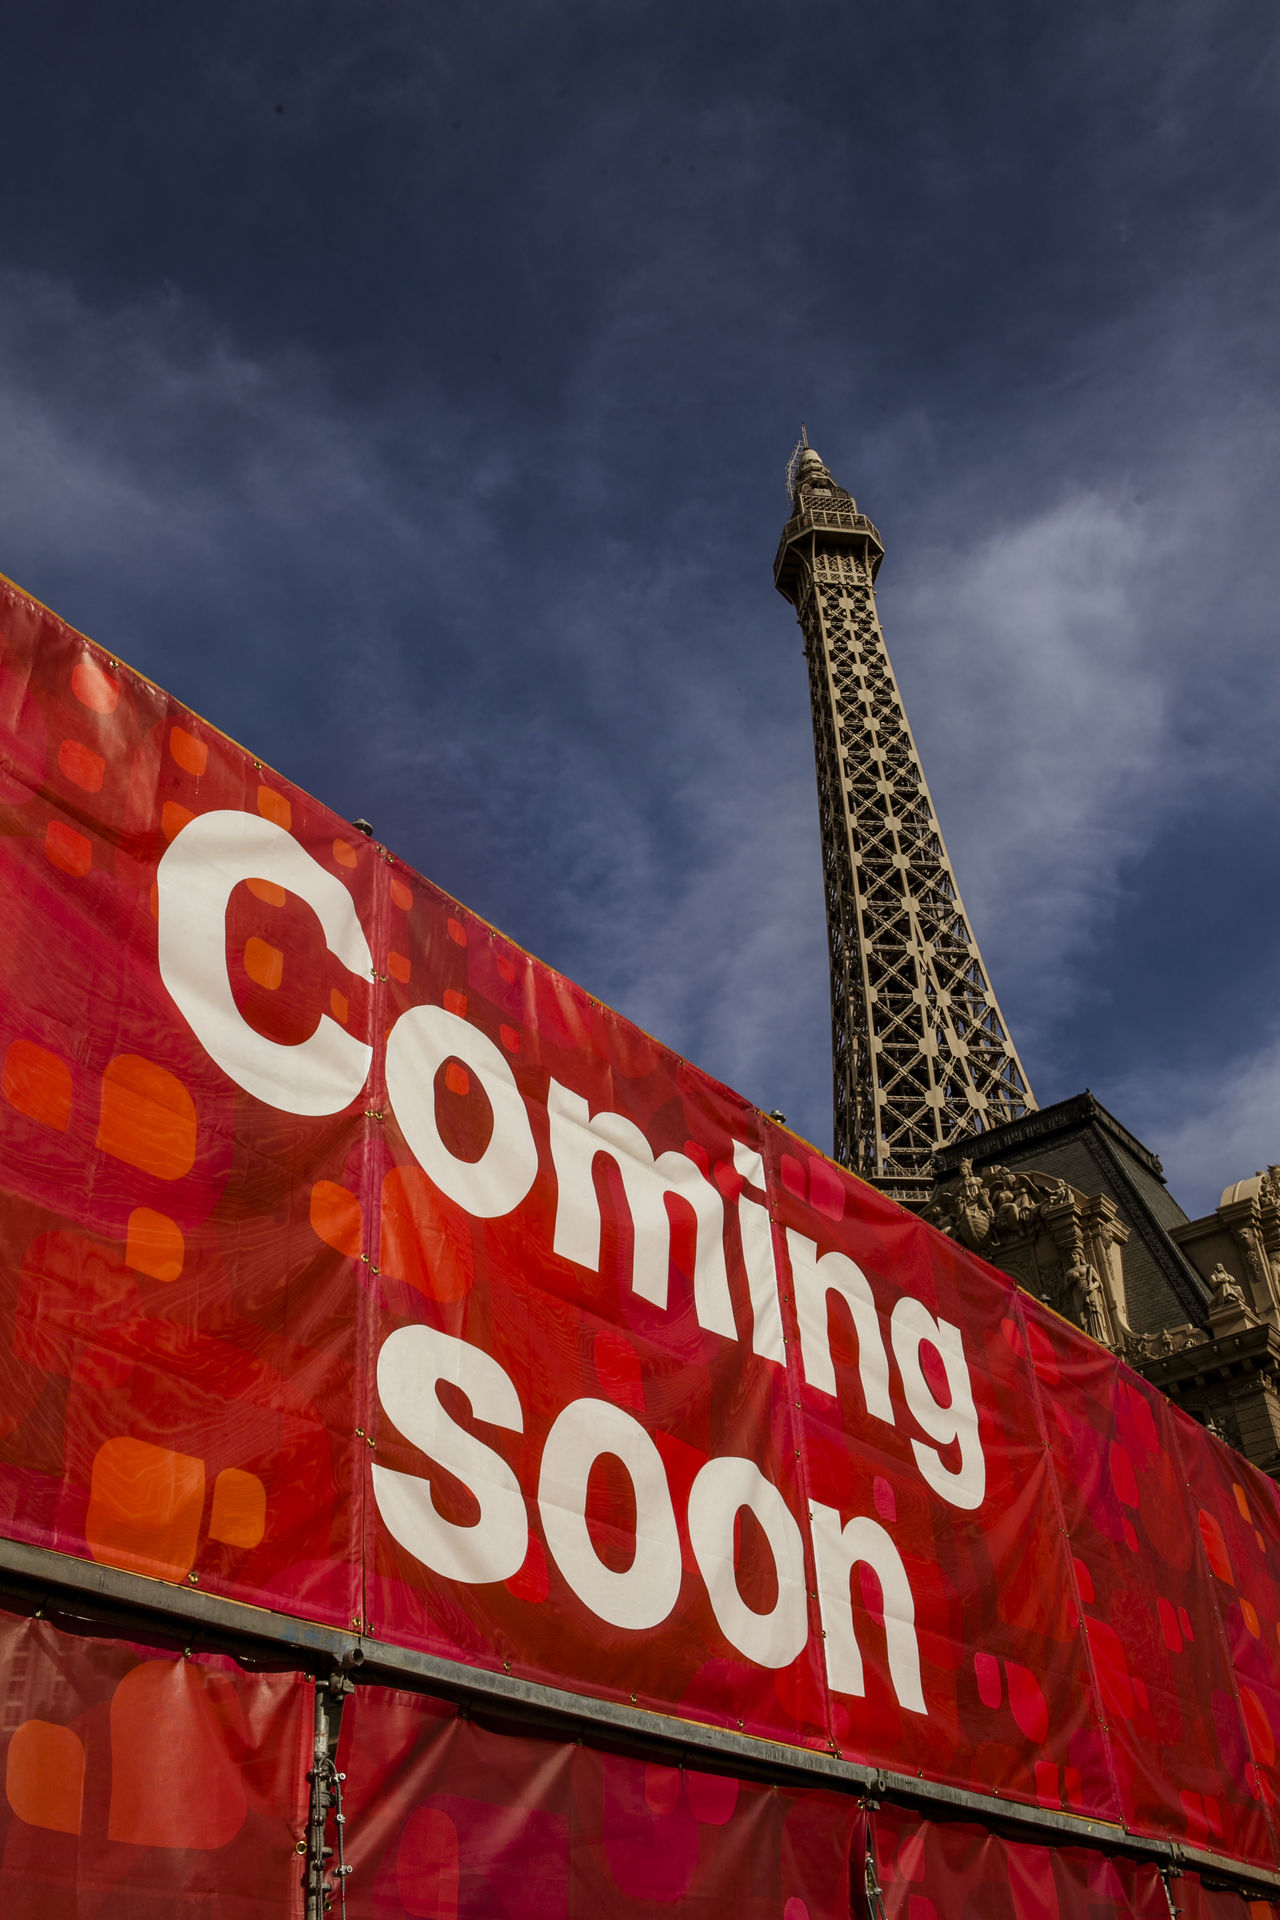 Low angle view of text on red canvas by paris las vegas hotel against sky